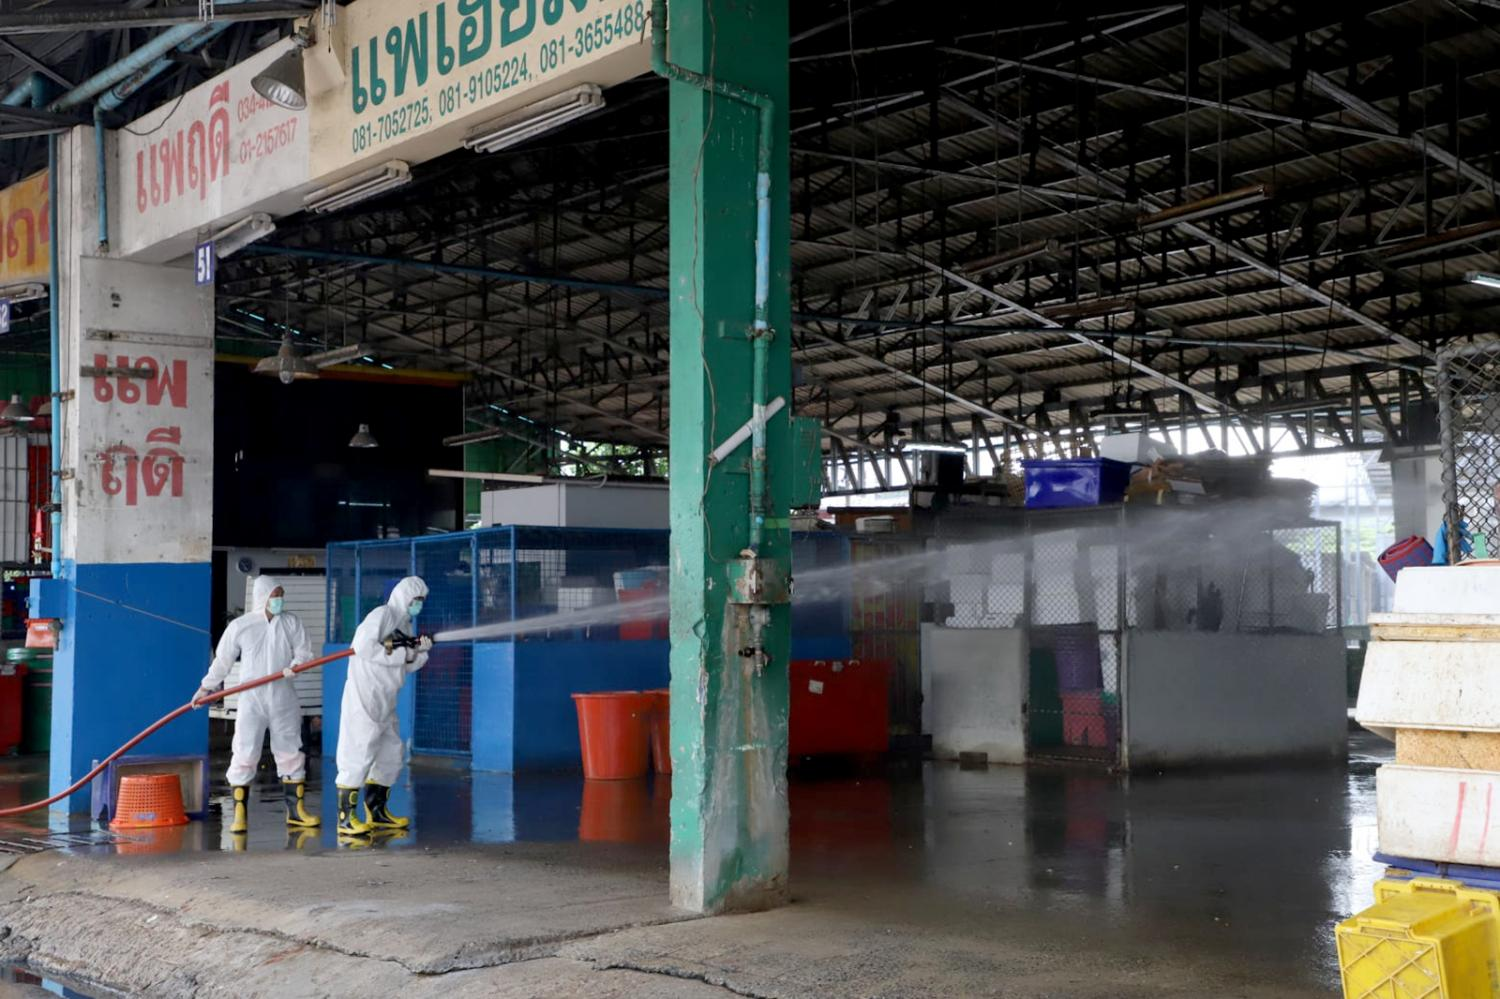 Talad Klang Kung, the Central Shrimp Market where the infected vendor worked in Samut Sakhon, has been closed for a thorough cleaning for three days.(Samut Sakhon Provincial Public Relations Office photo)